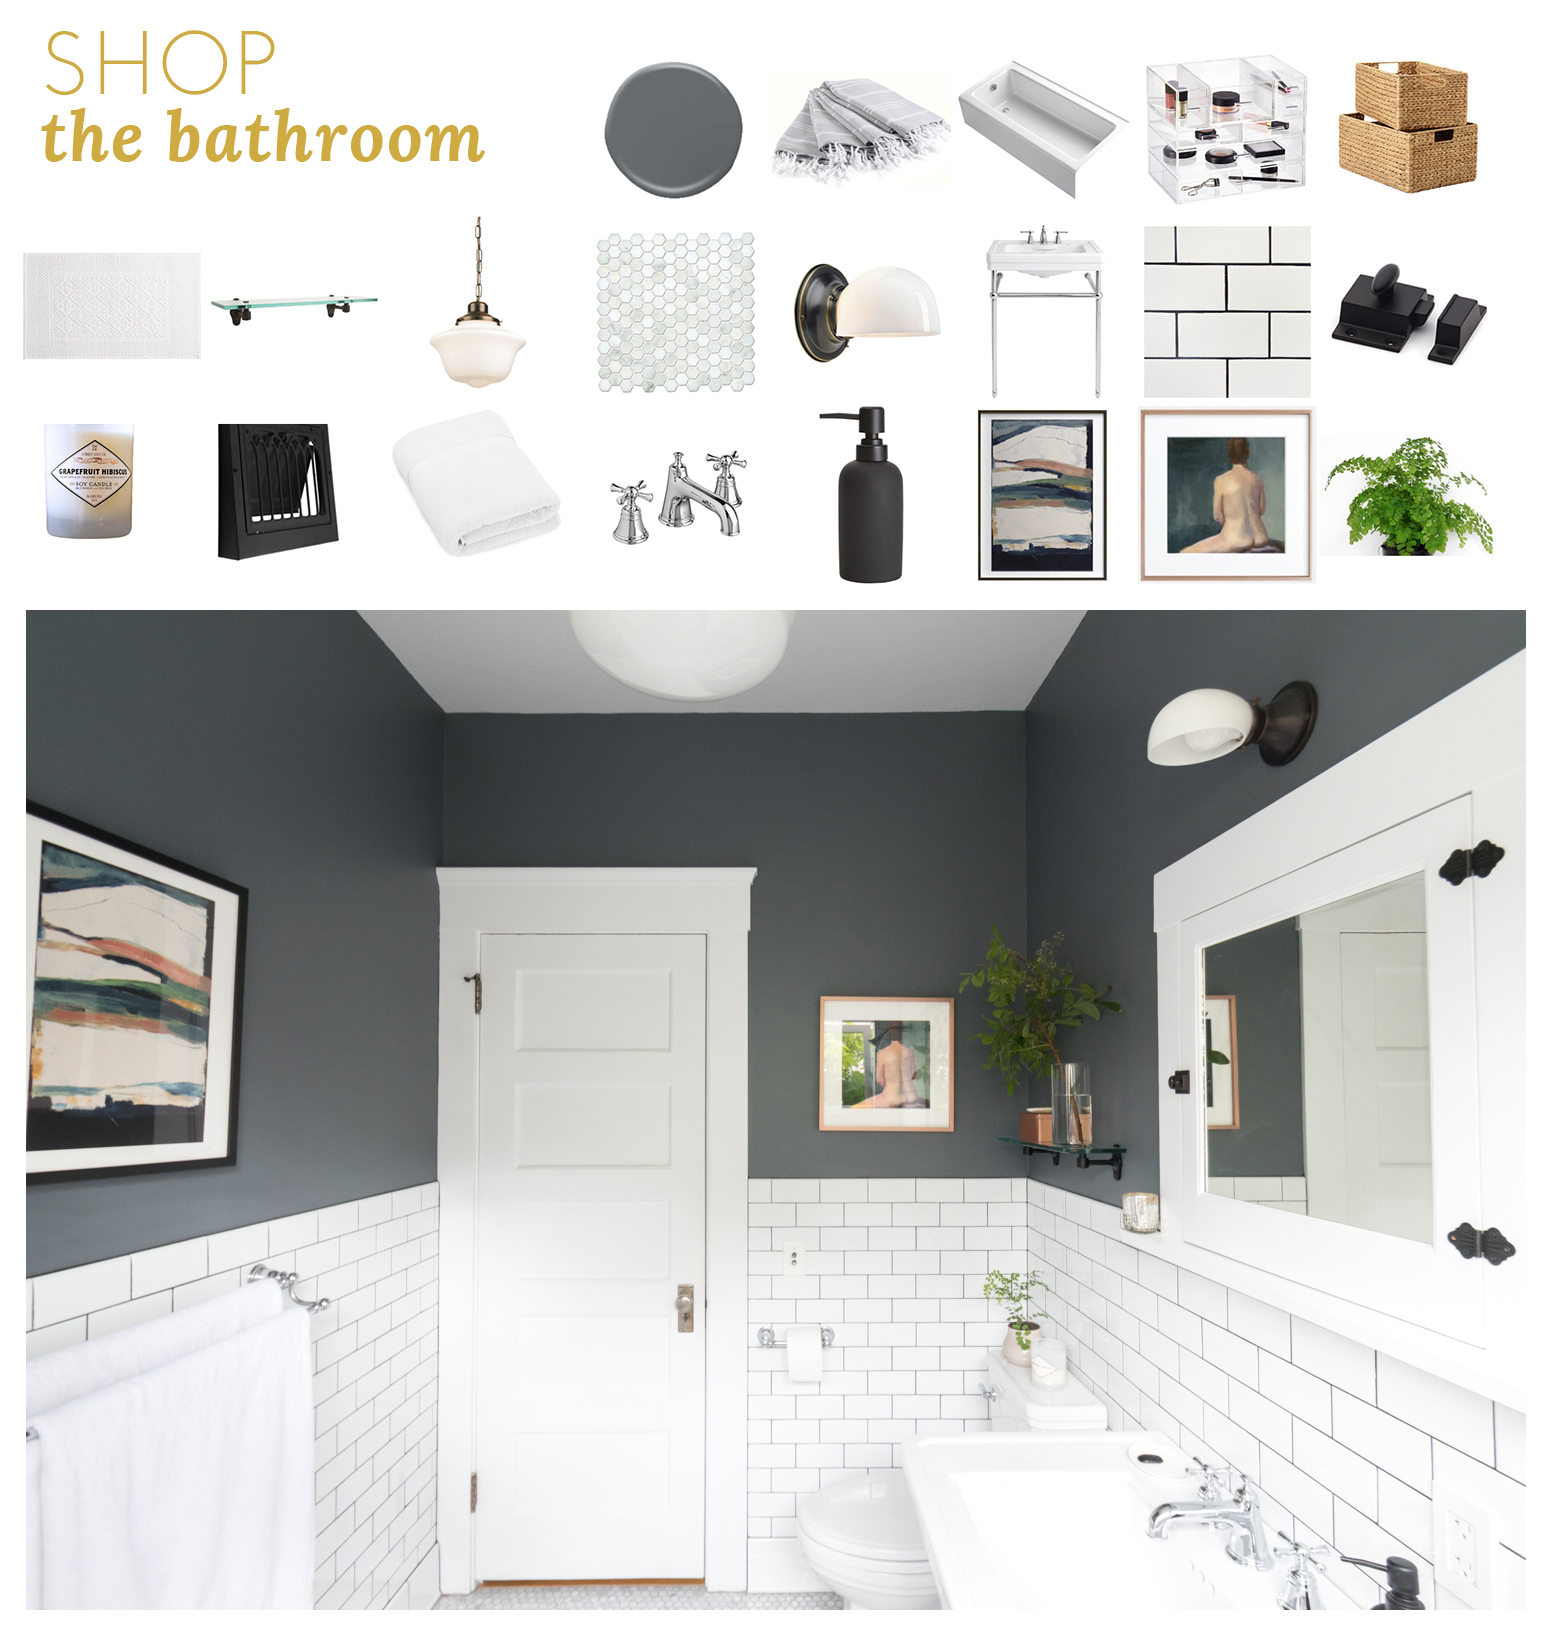 Shop+the+bathroom+The+Gold+Hive - vintage grey and subway tile.jpg